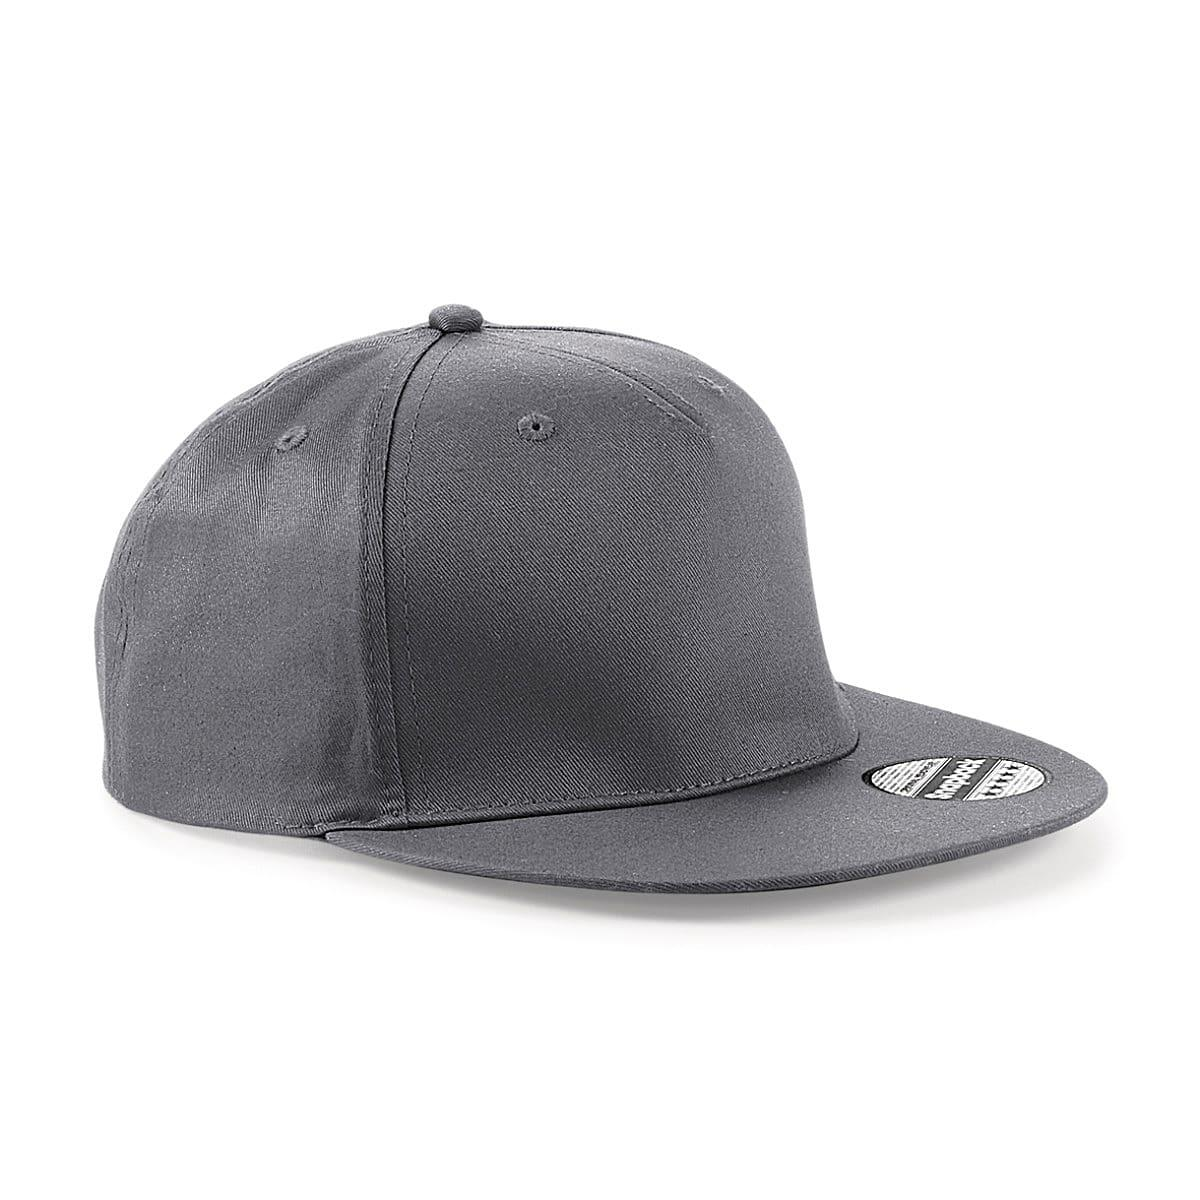 Beechfield Snapback Rapper Cap in Graphite (Product Code: B610)